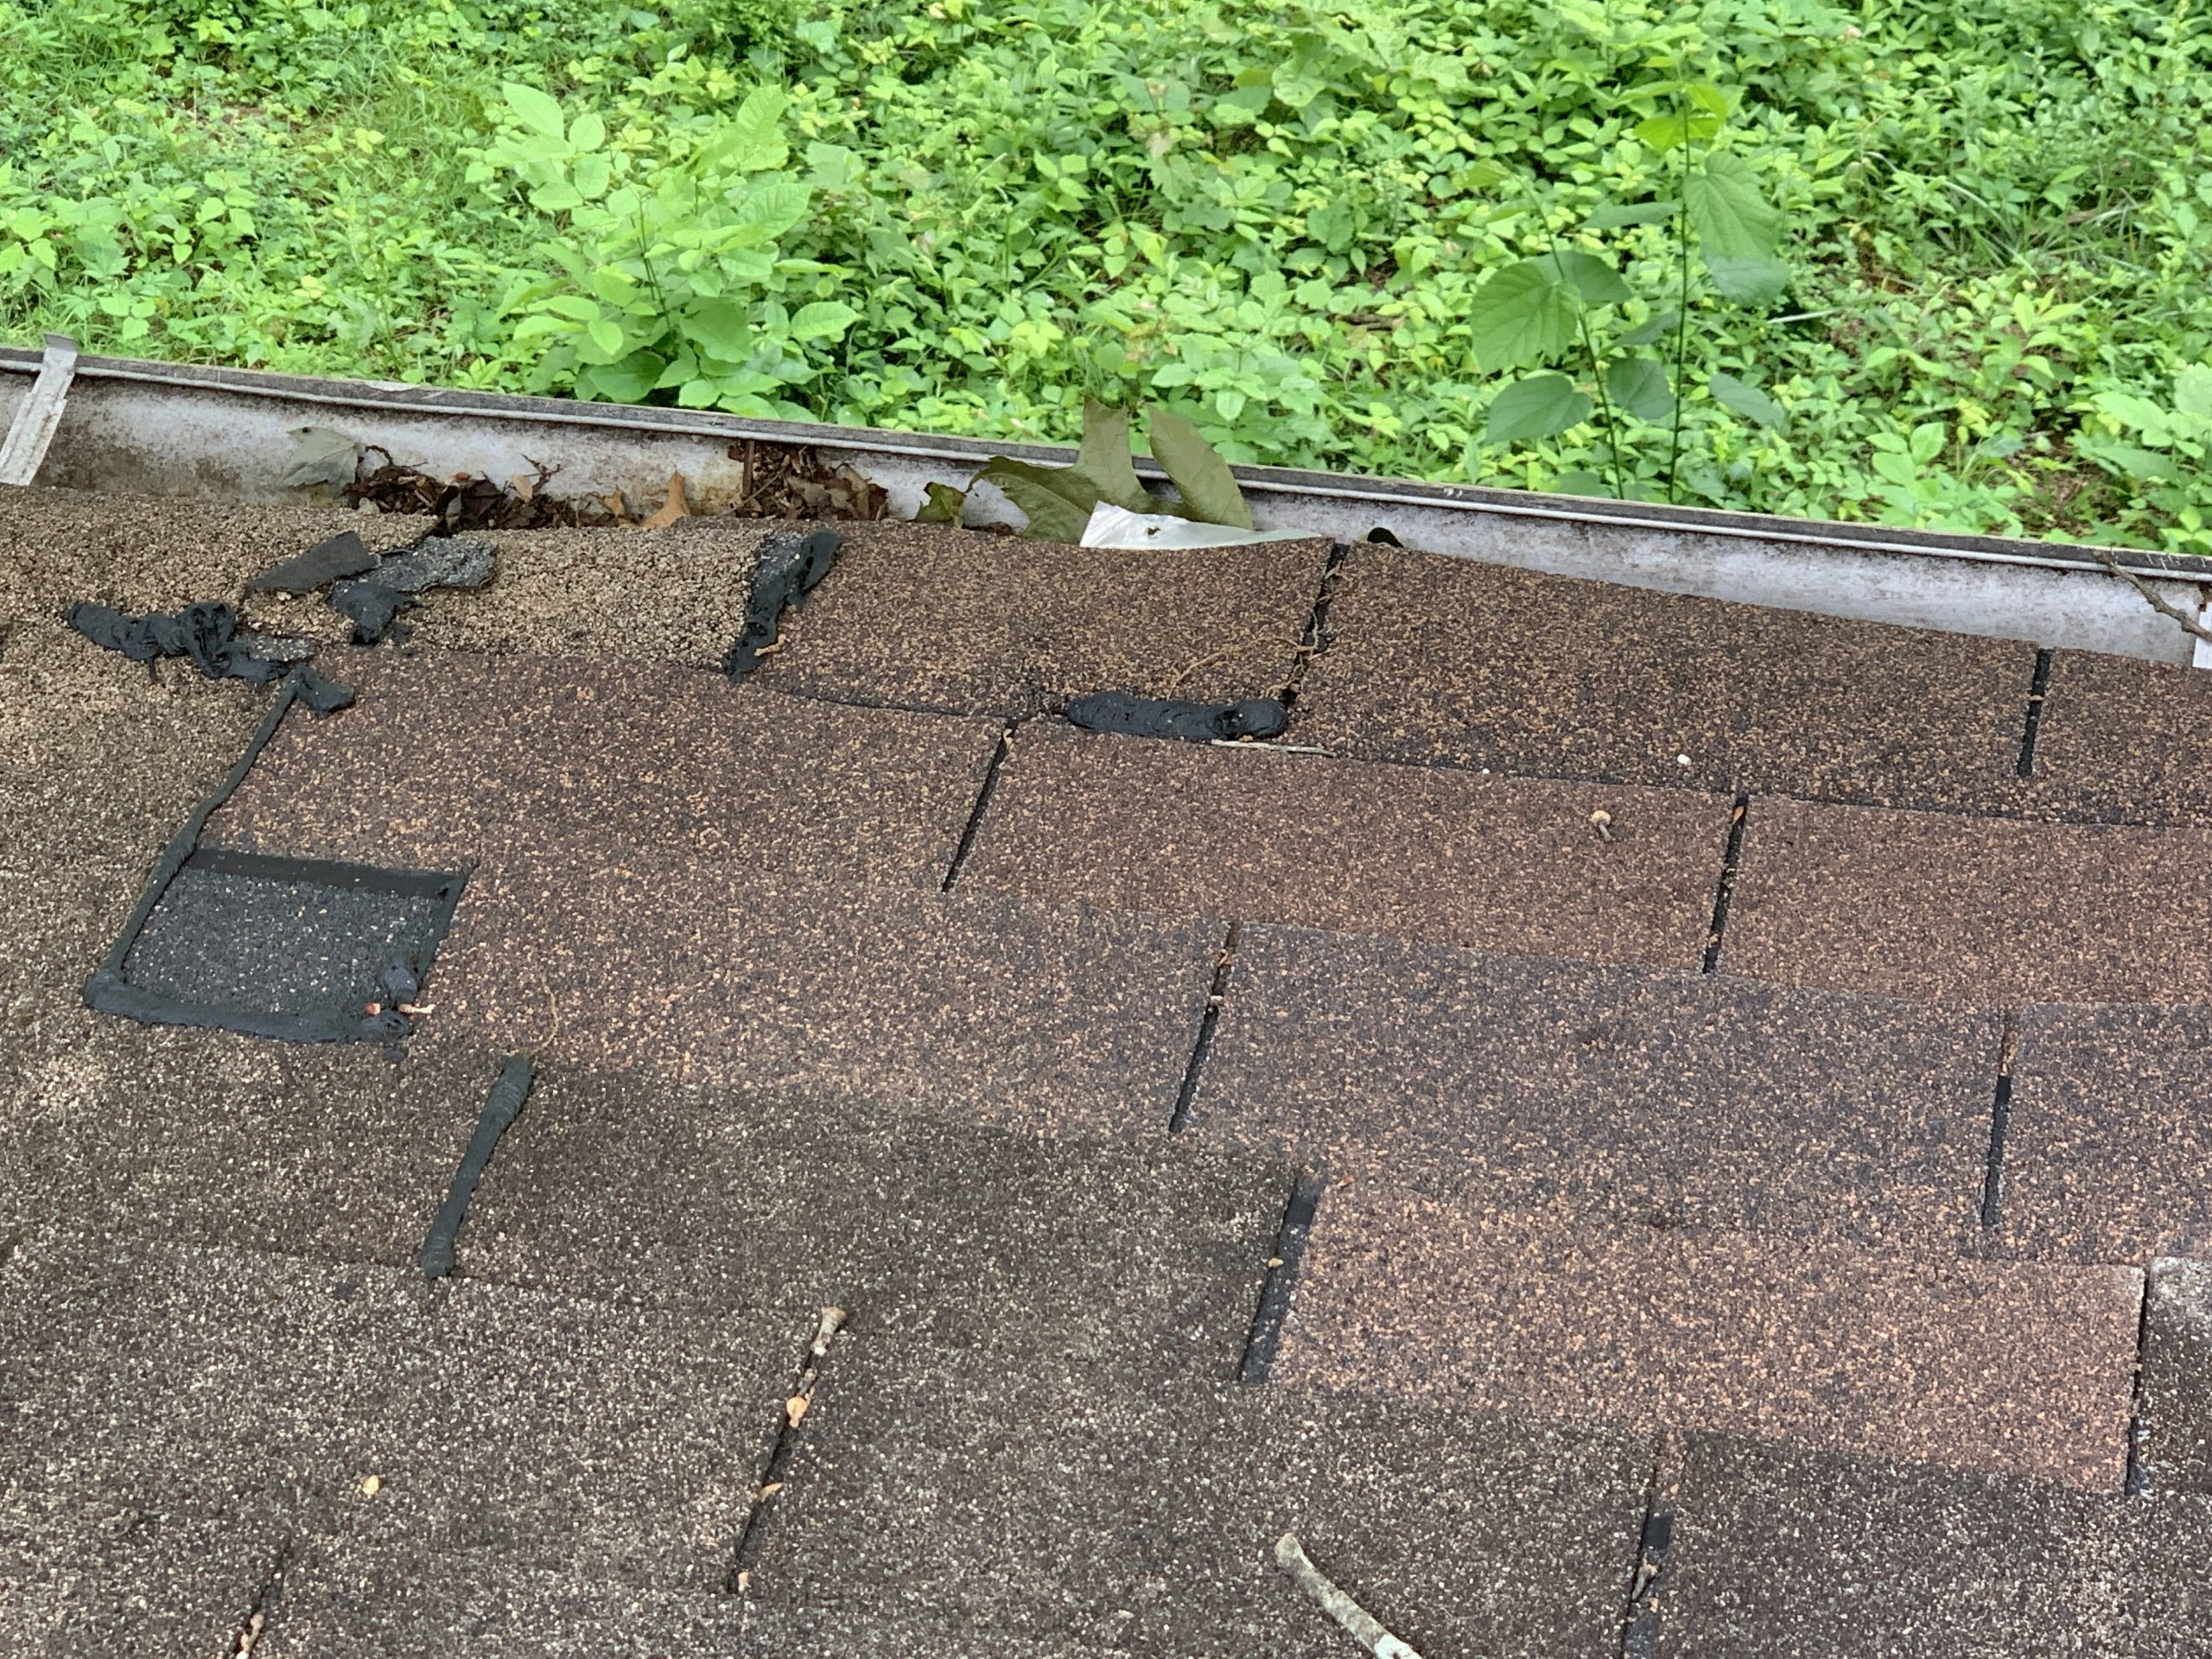 this picture is of the edge of a roof line where there are rotten boards and the shingles are starting to warp